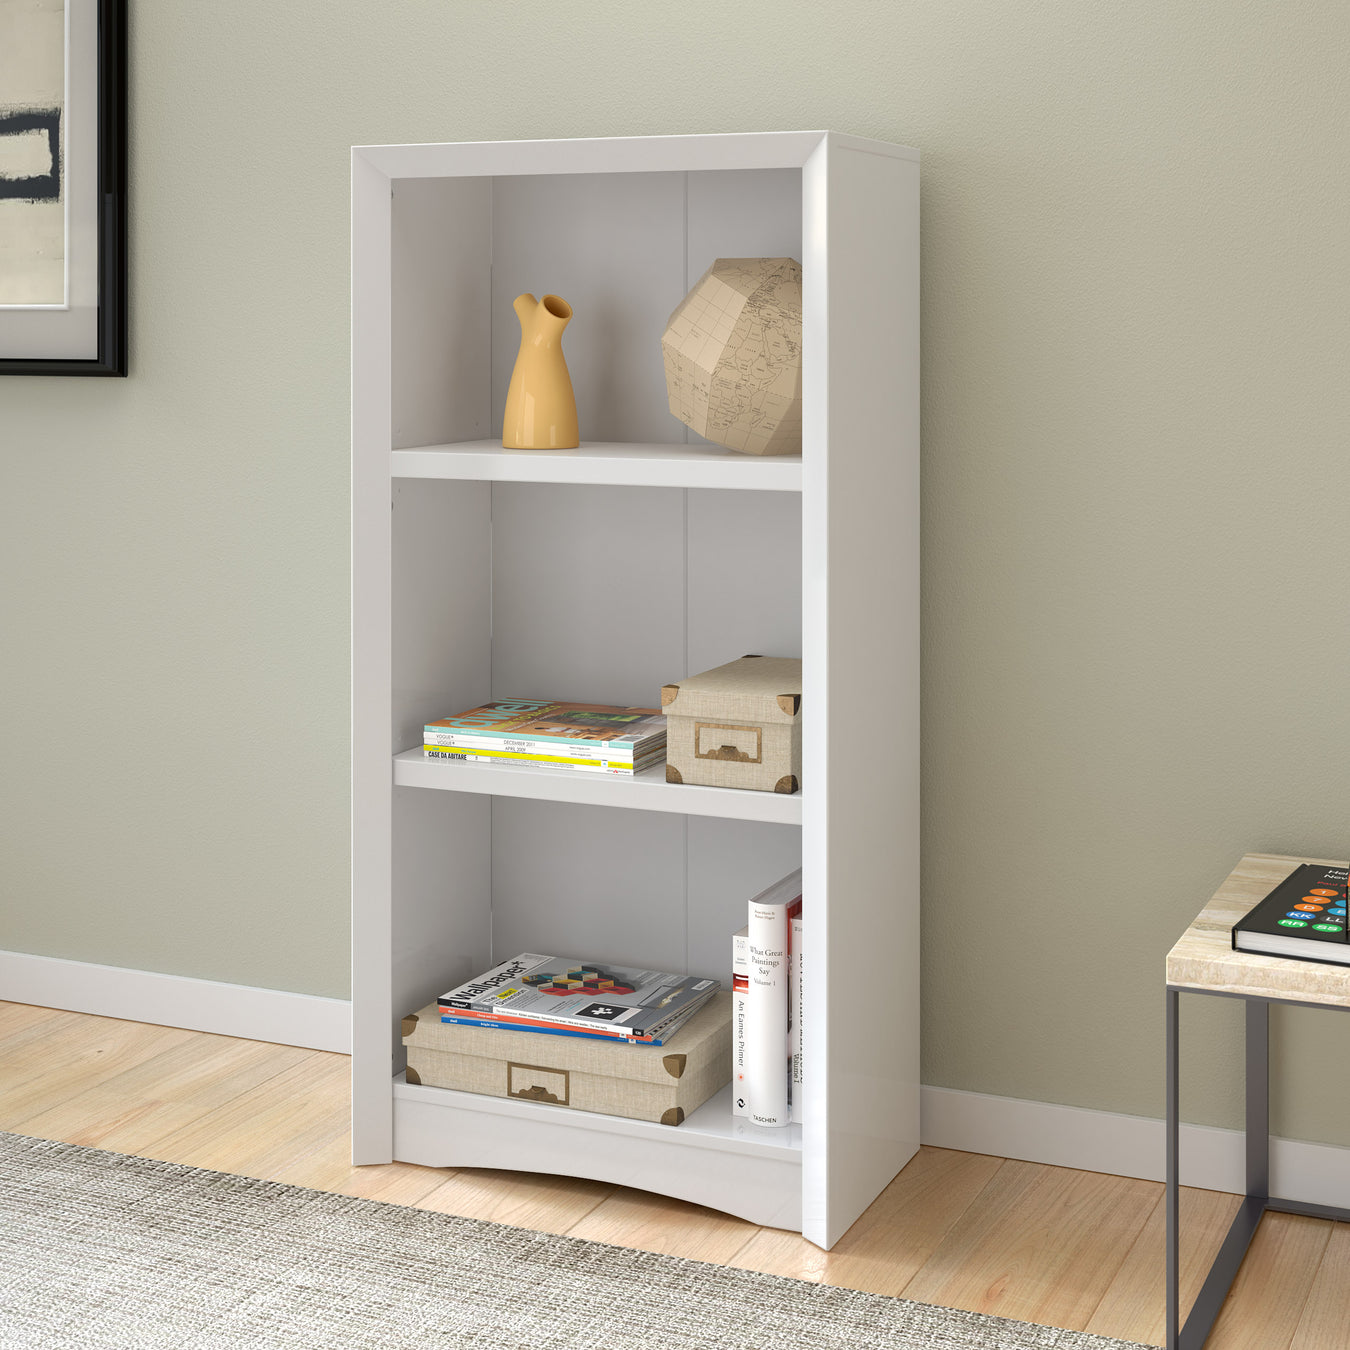 Bookshelves and cabinets for sale